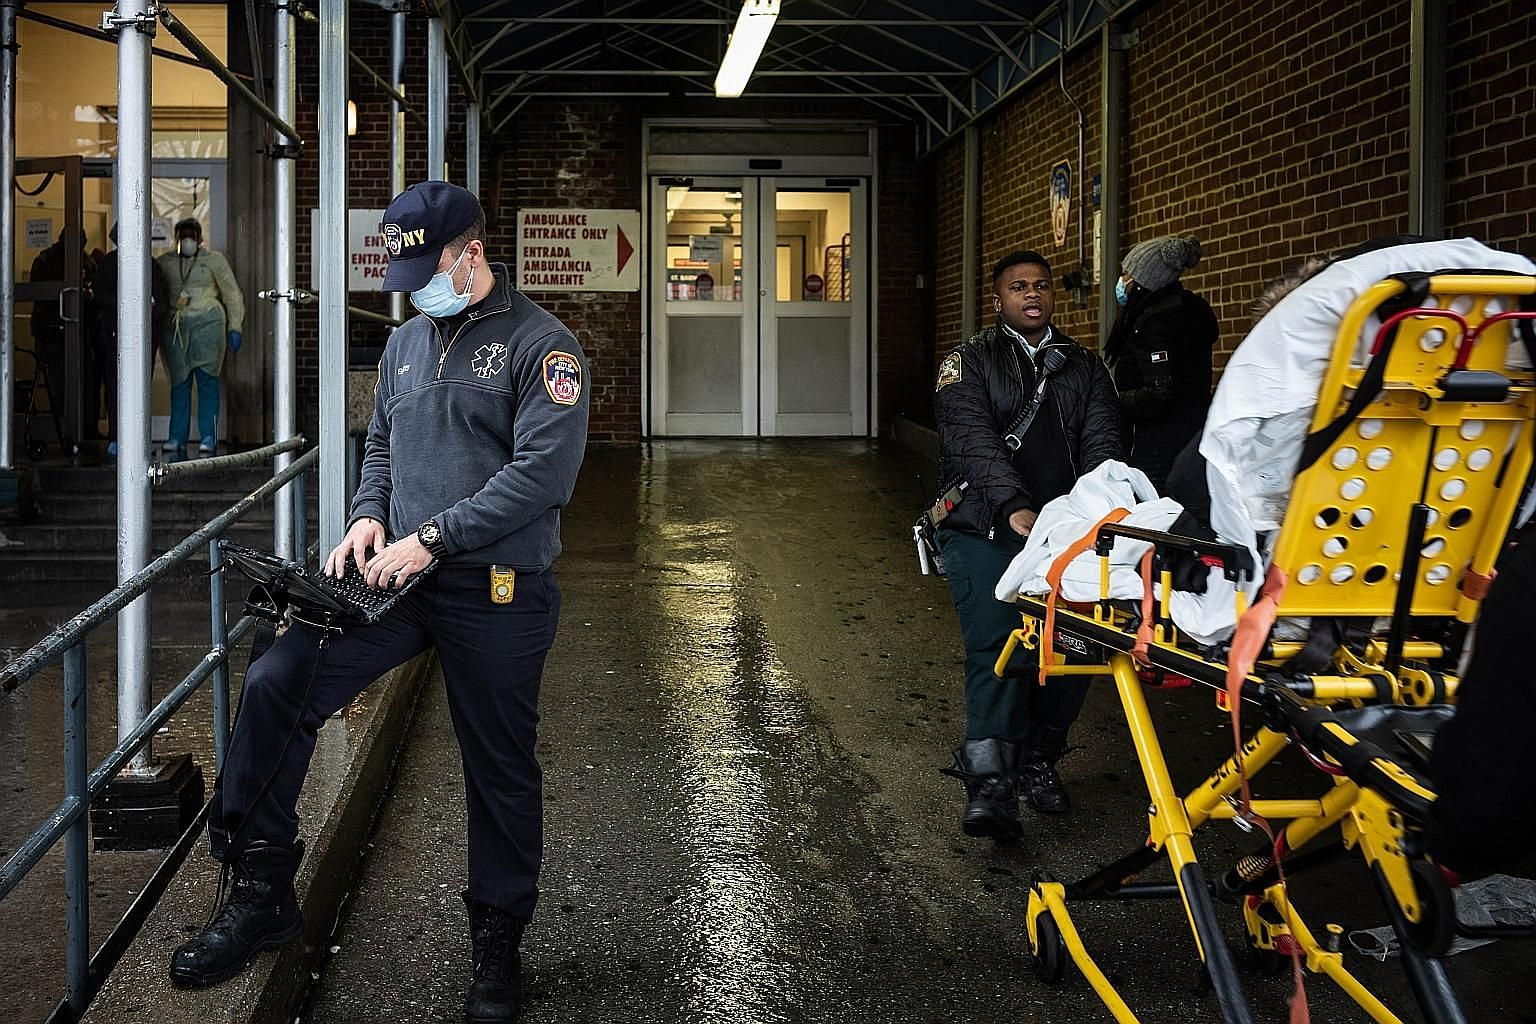 Staff working outside the emergency department at St Barnabas Hospital in New York City on Monday. The writer urges millennials to take Covid-19 seriously as their social distancing is crucial to the health of more vulnerable populations and can have